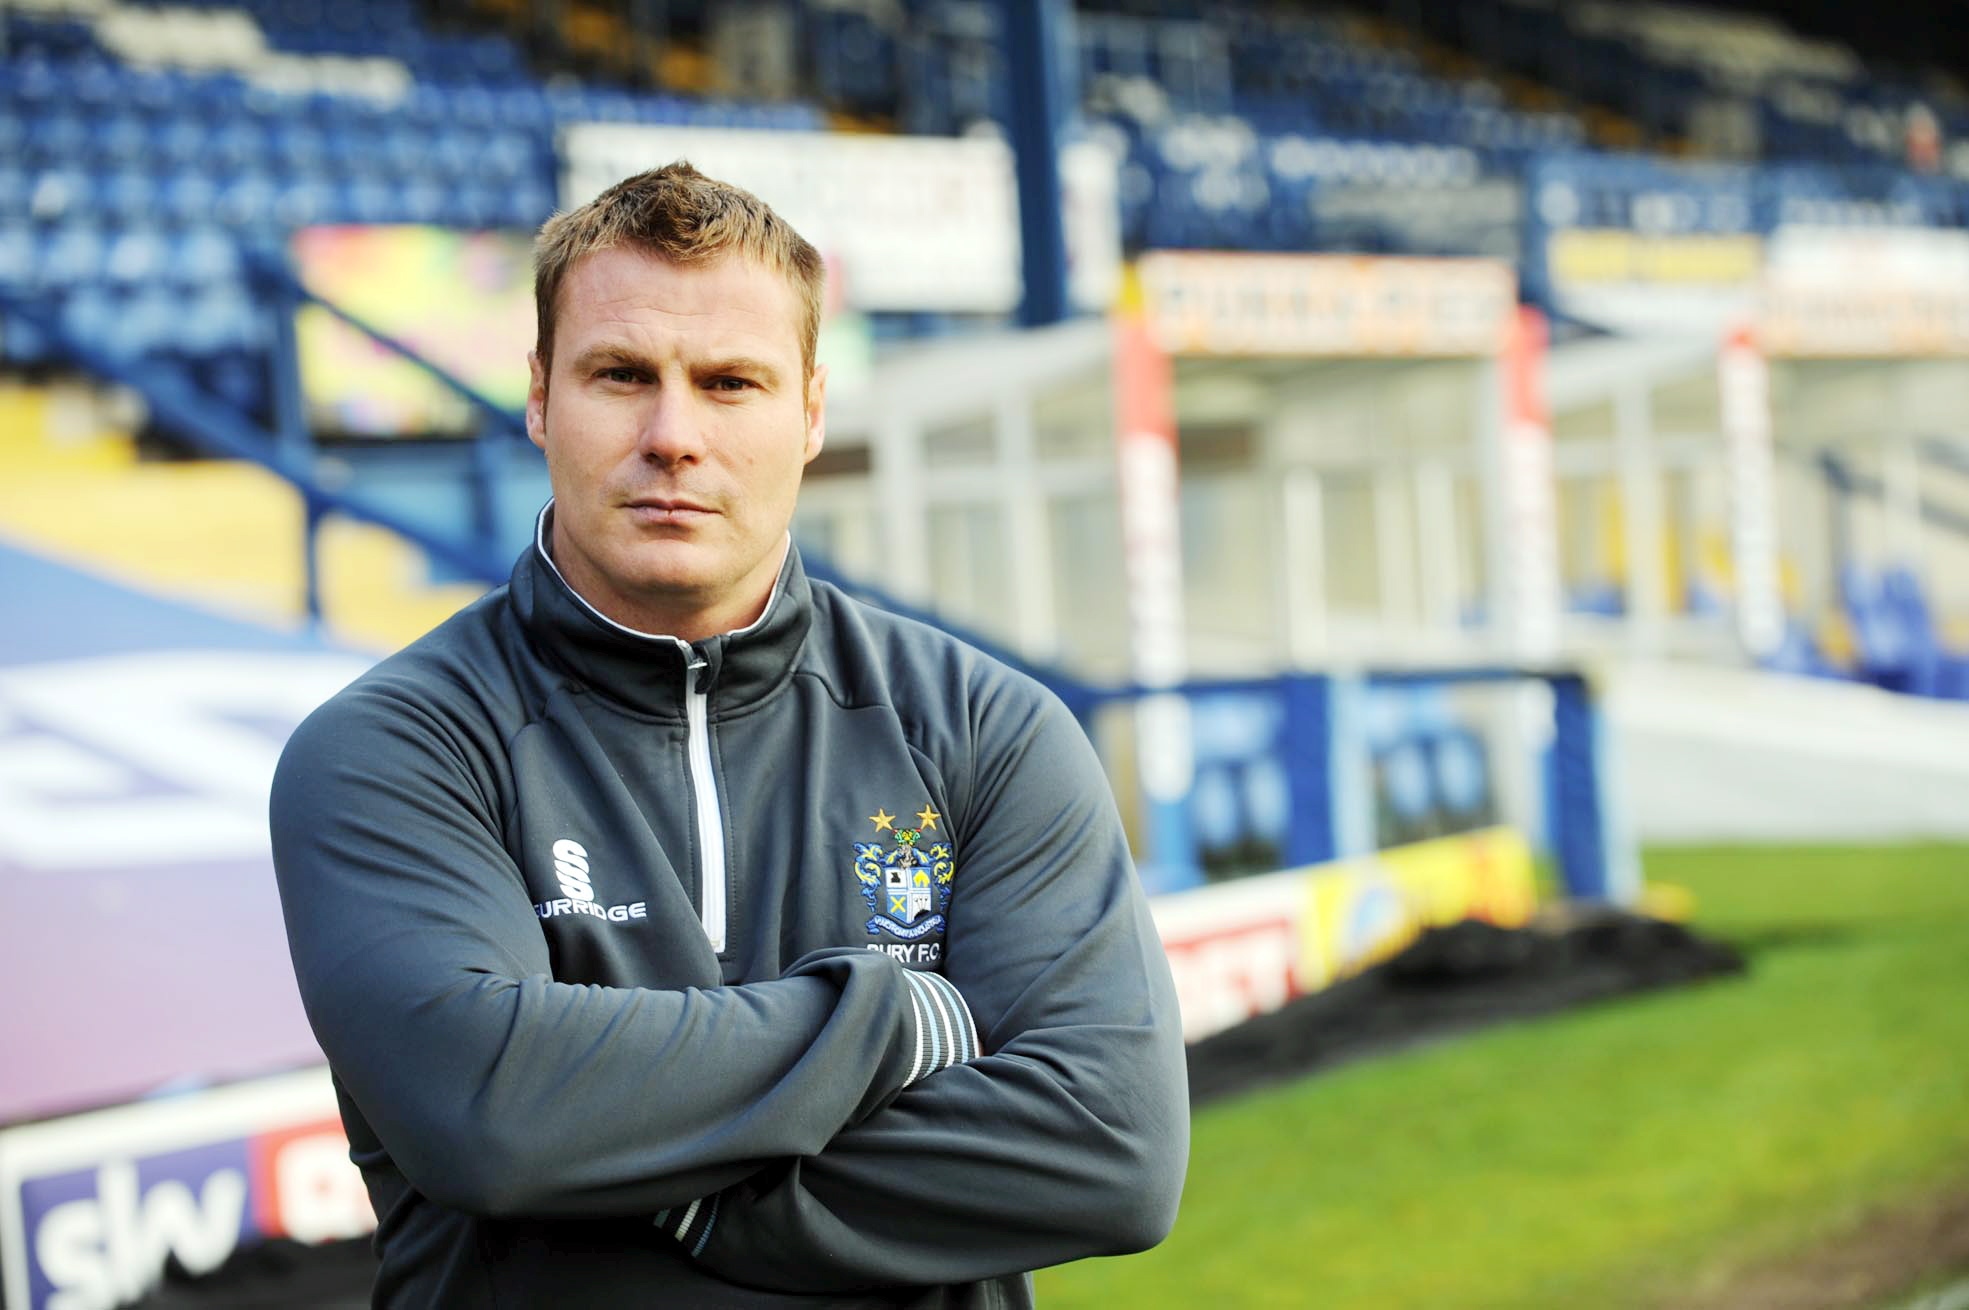 Bury manager David Flitcroft